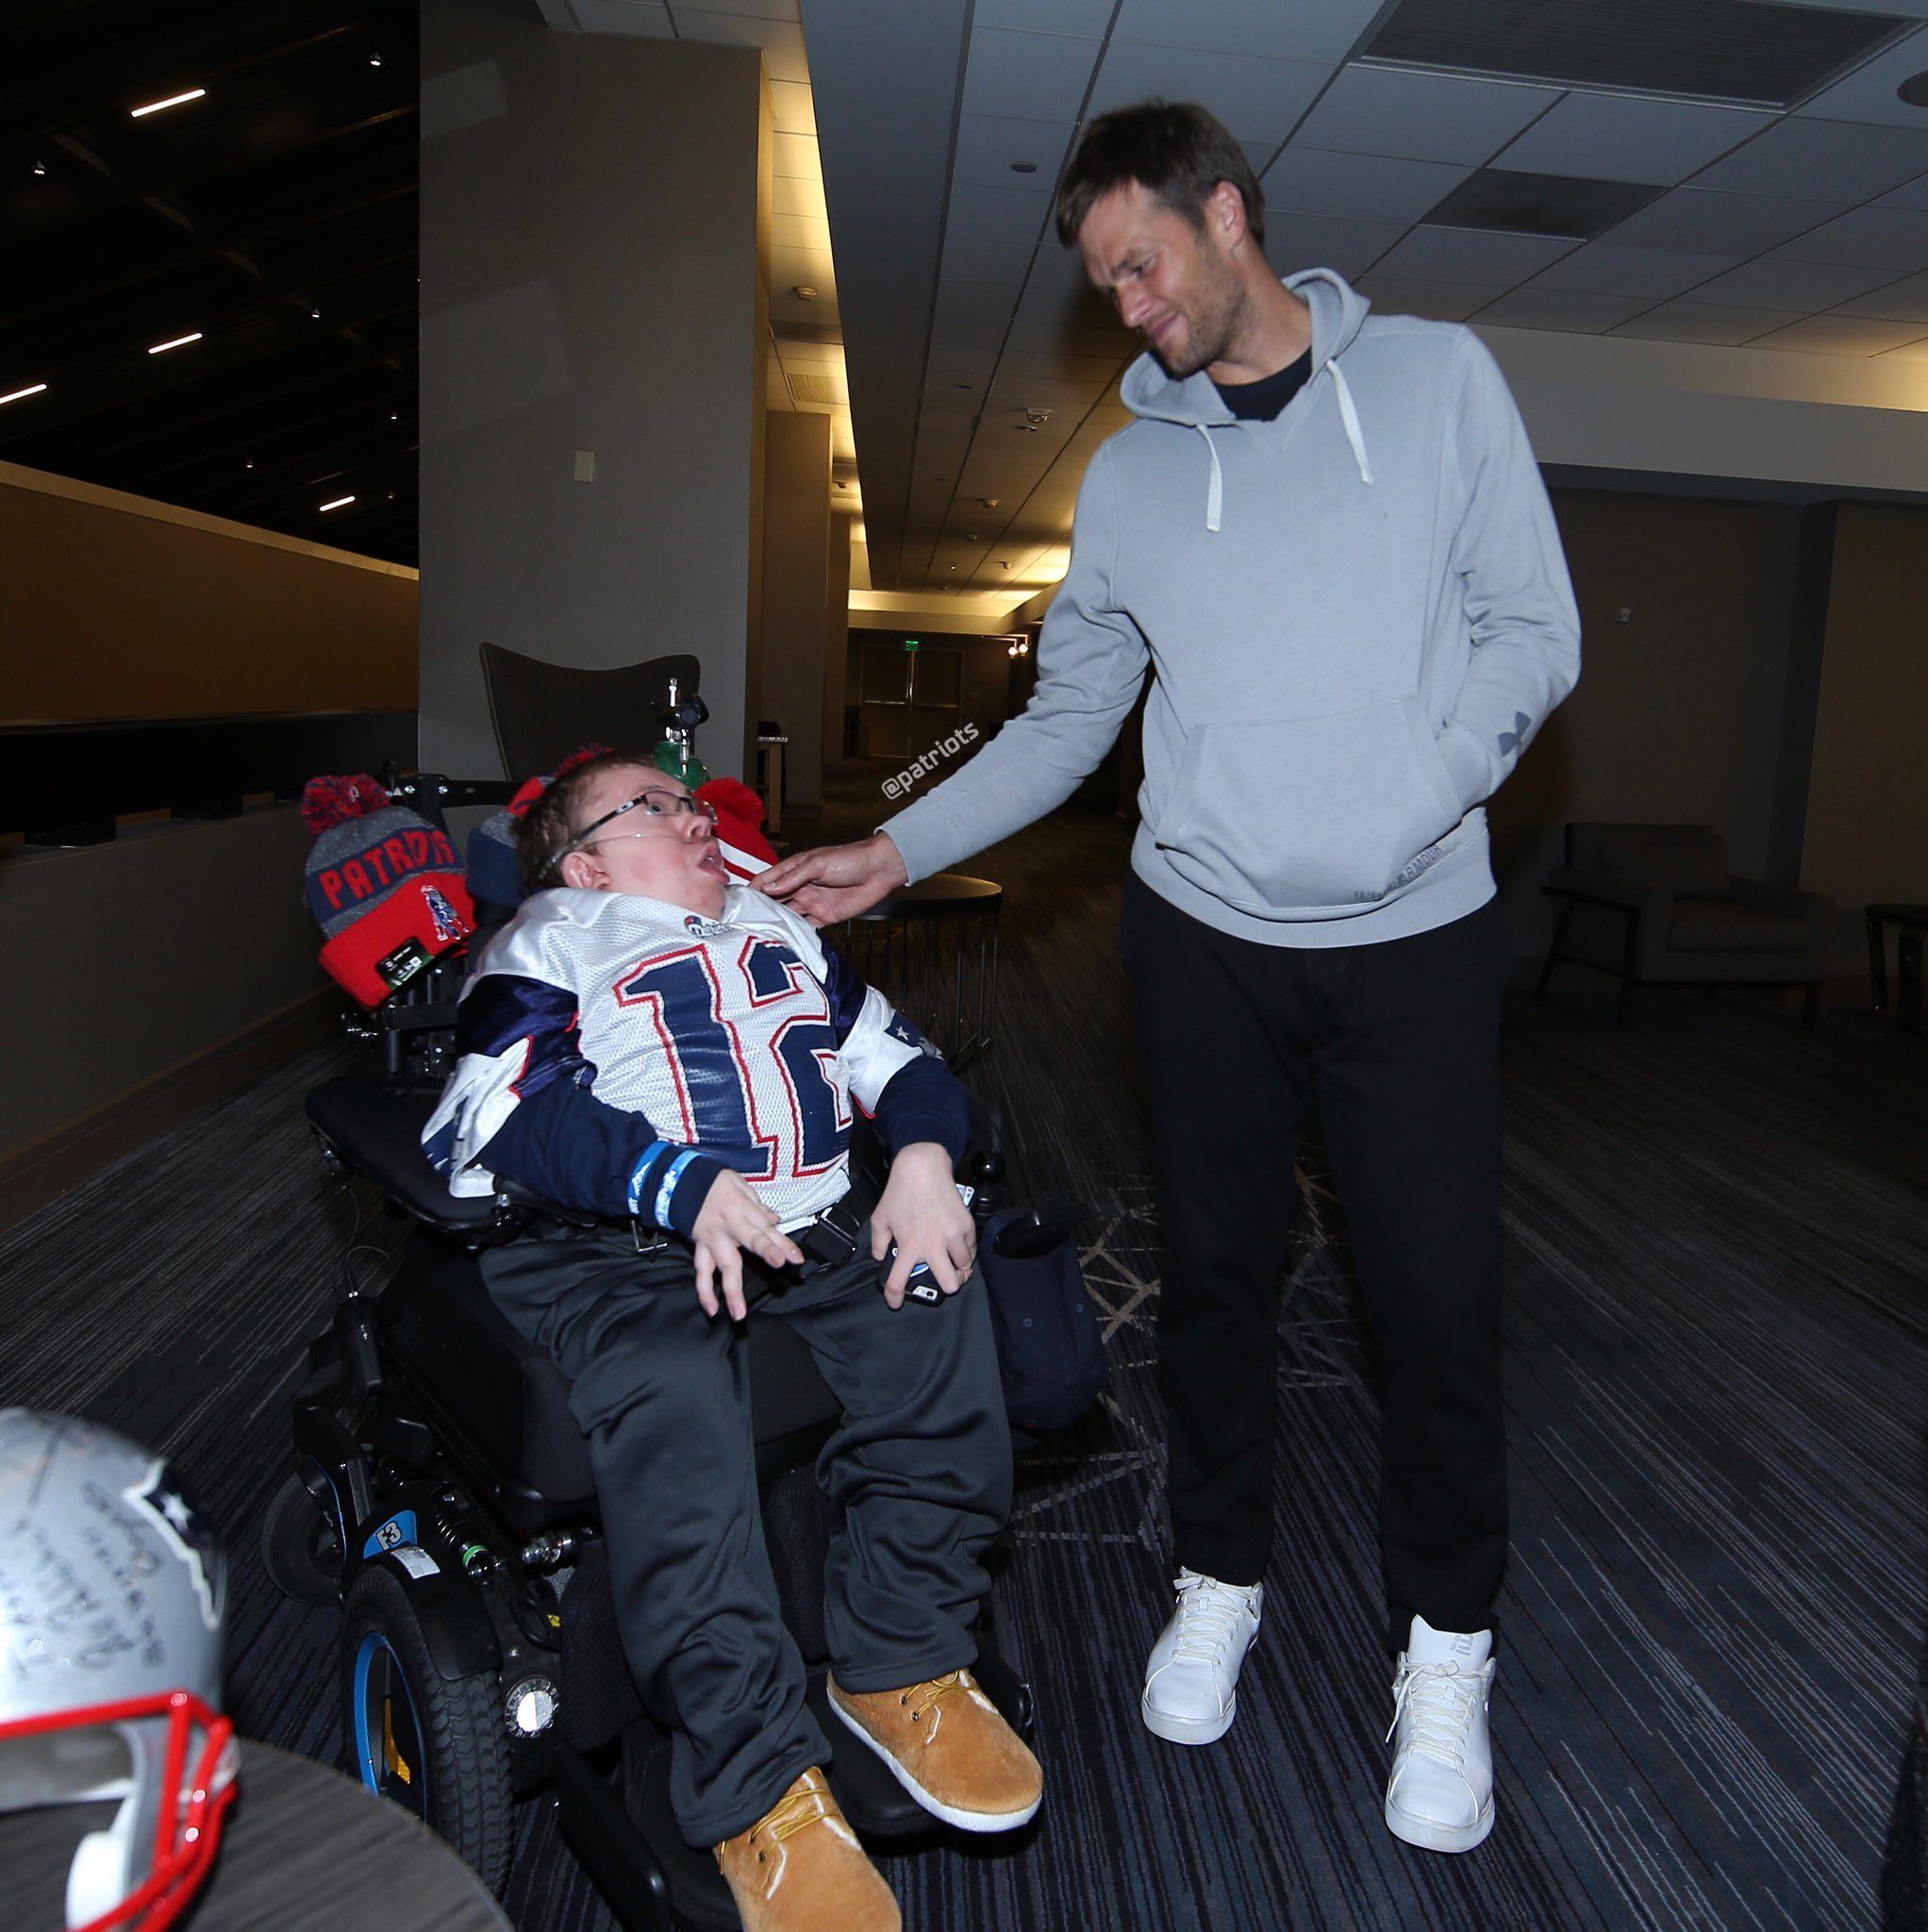 A special meeting with a special fan.  Hear Aaron's story tomorrow on Sunday NFL Countdown. https://t.co/R2Tten474K